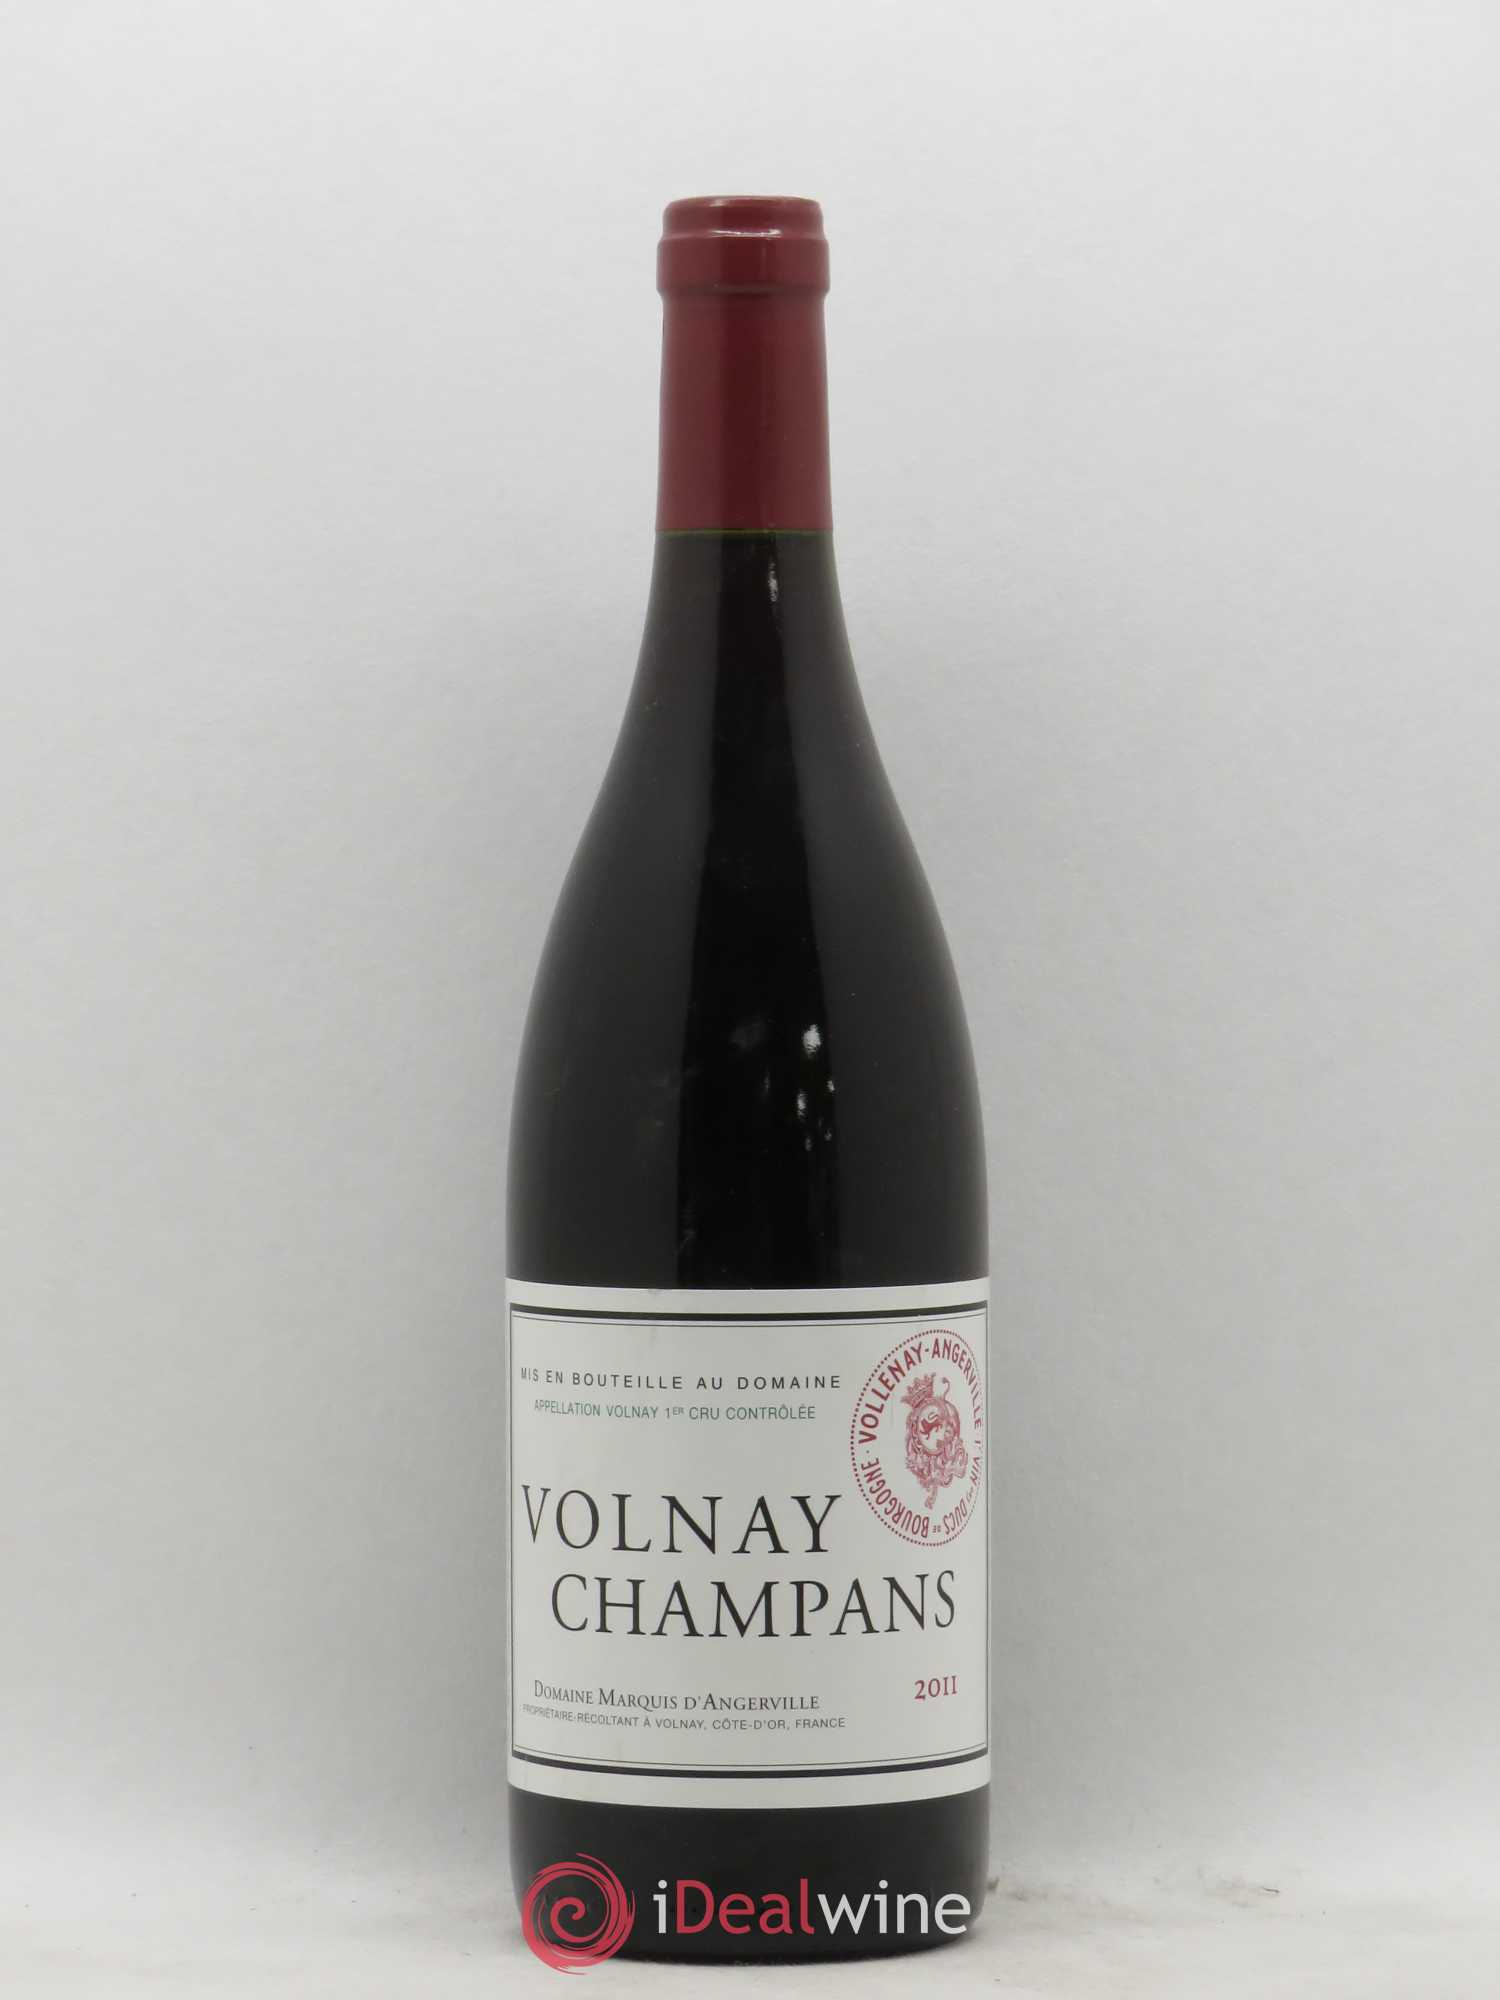 Volnay 1er Cru Champans Marquis d'Angerville (Domaine)  2011 - Lot of 1 Bottle